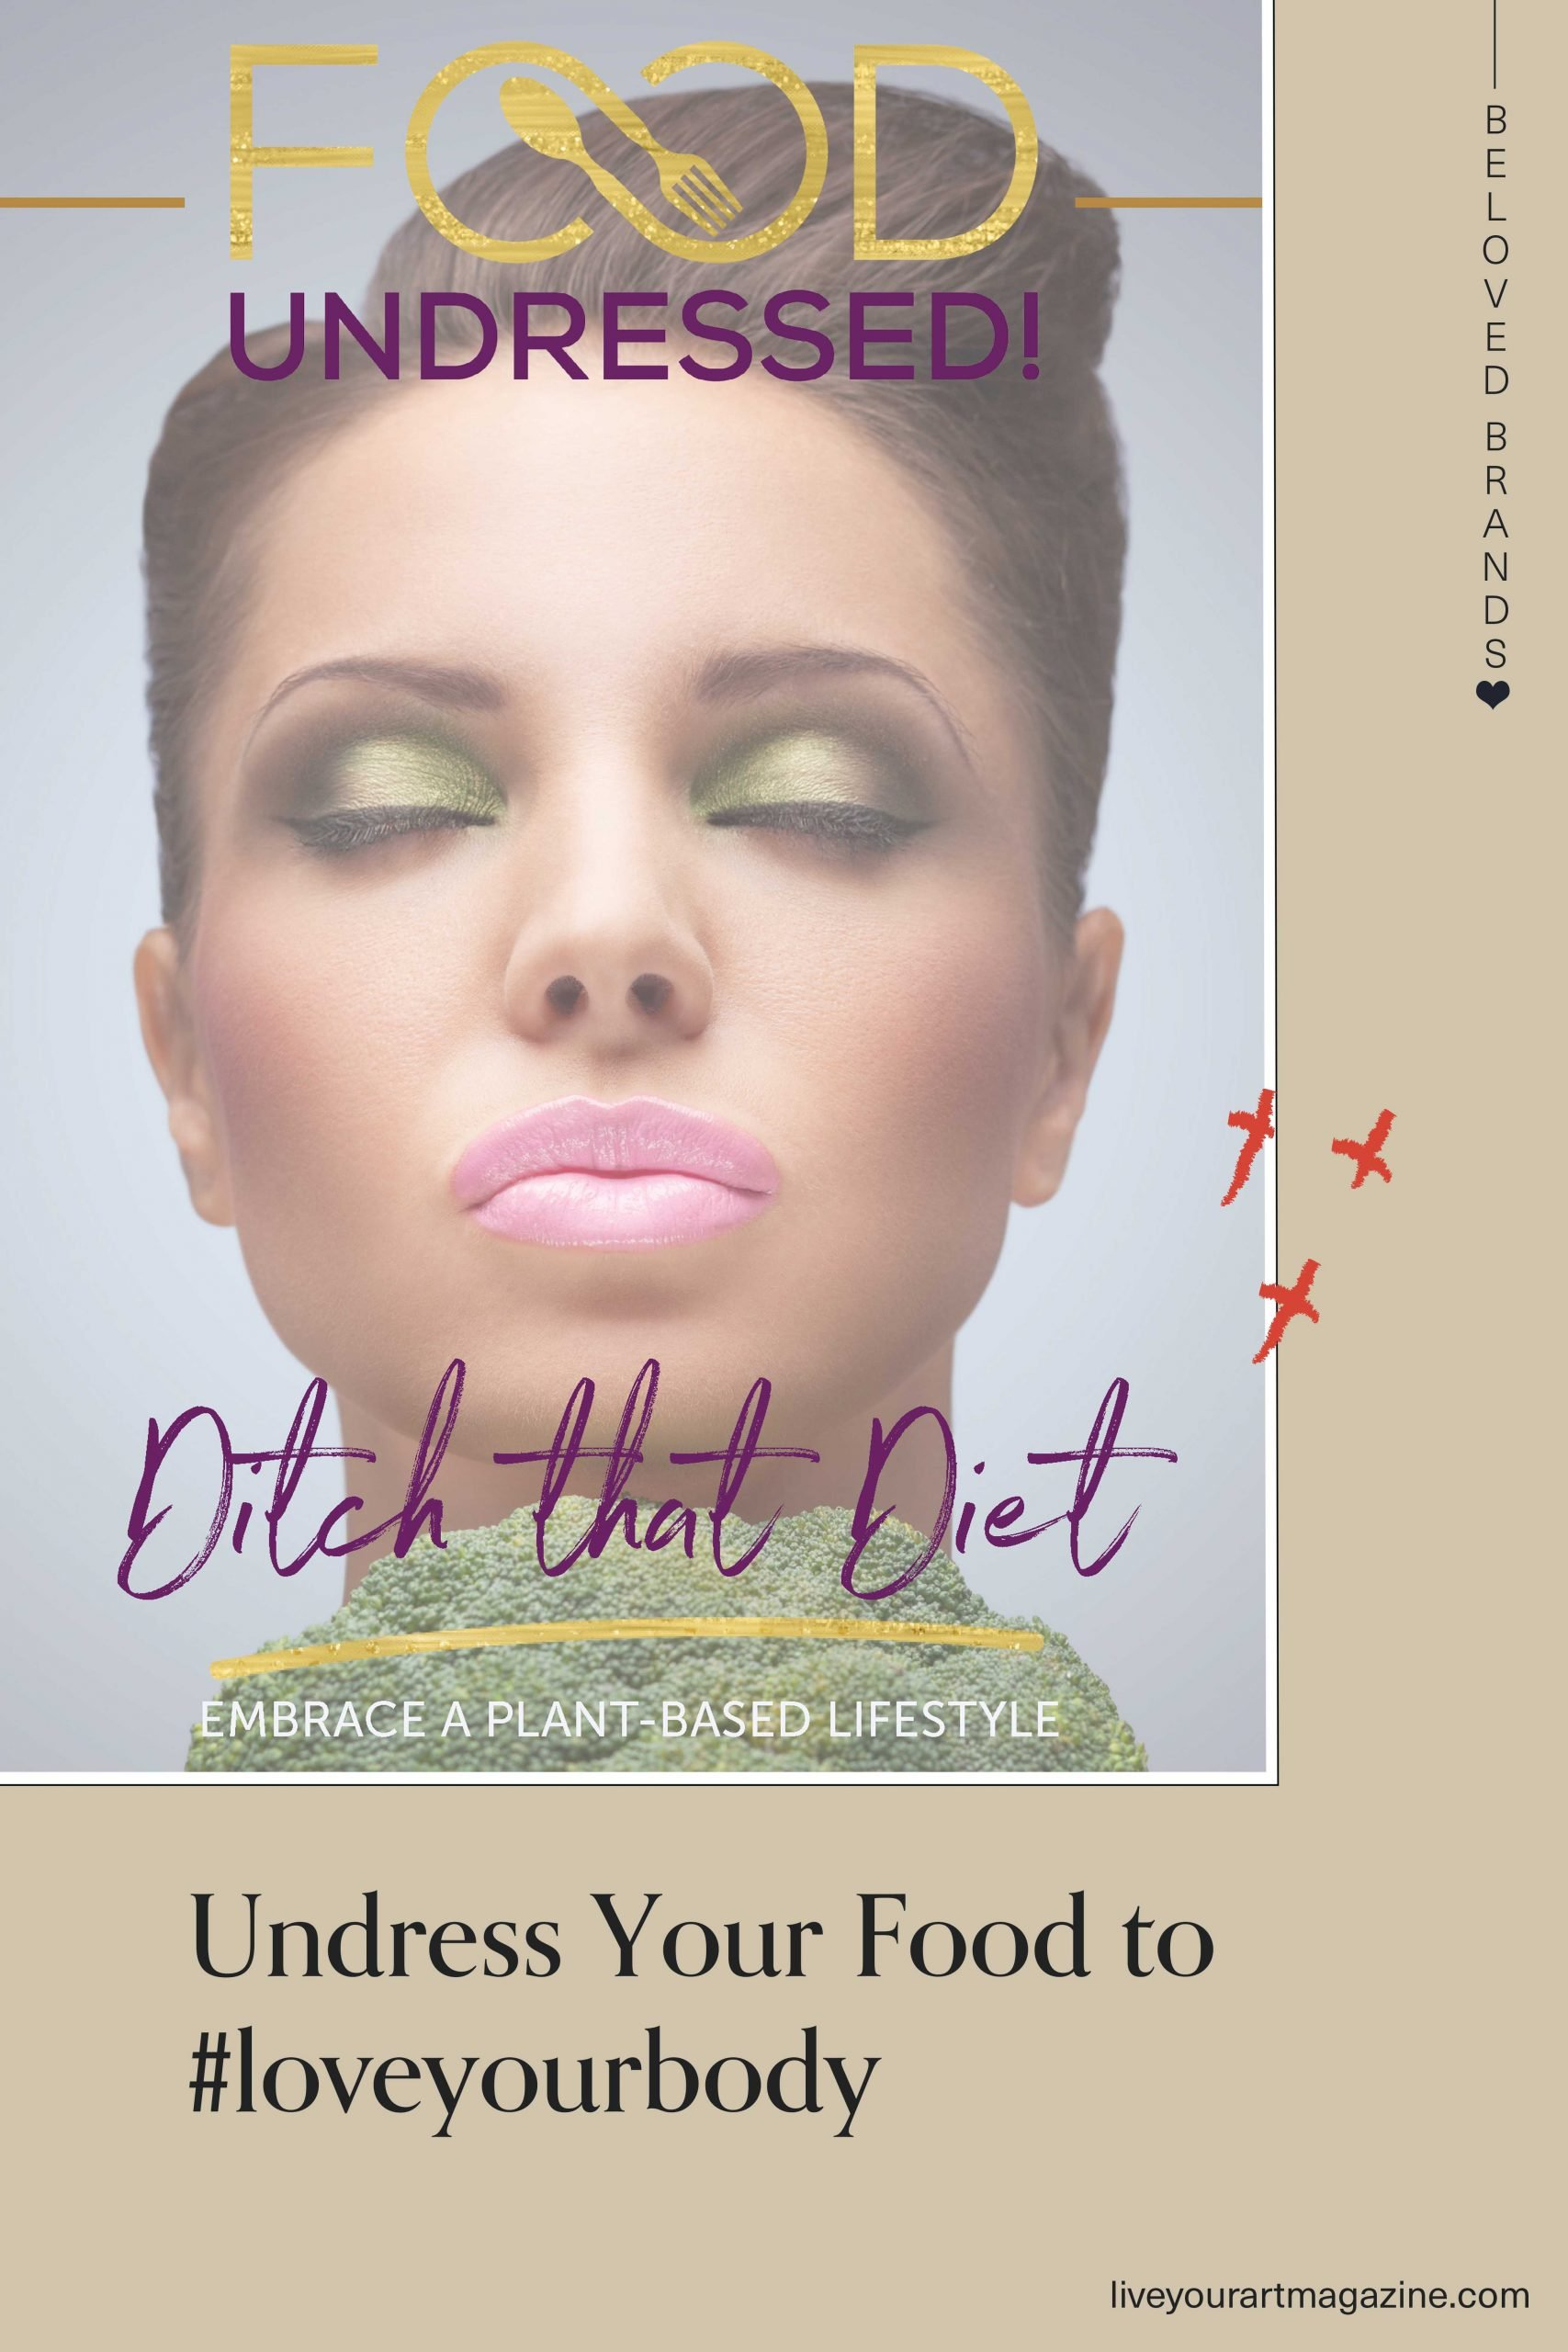 Undress your food #loveyourbody